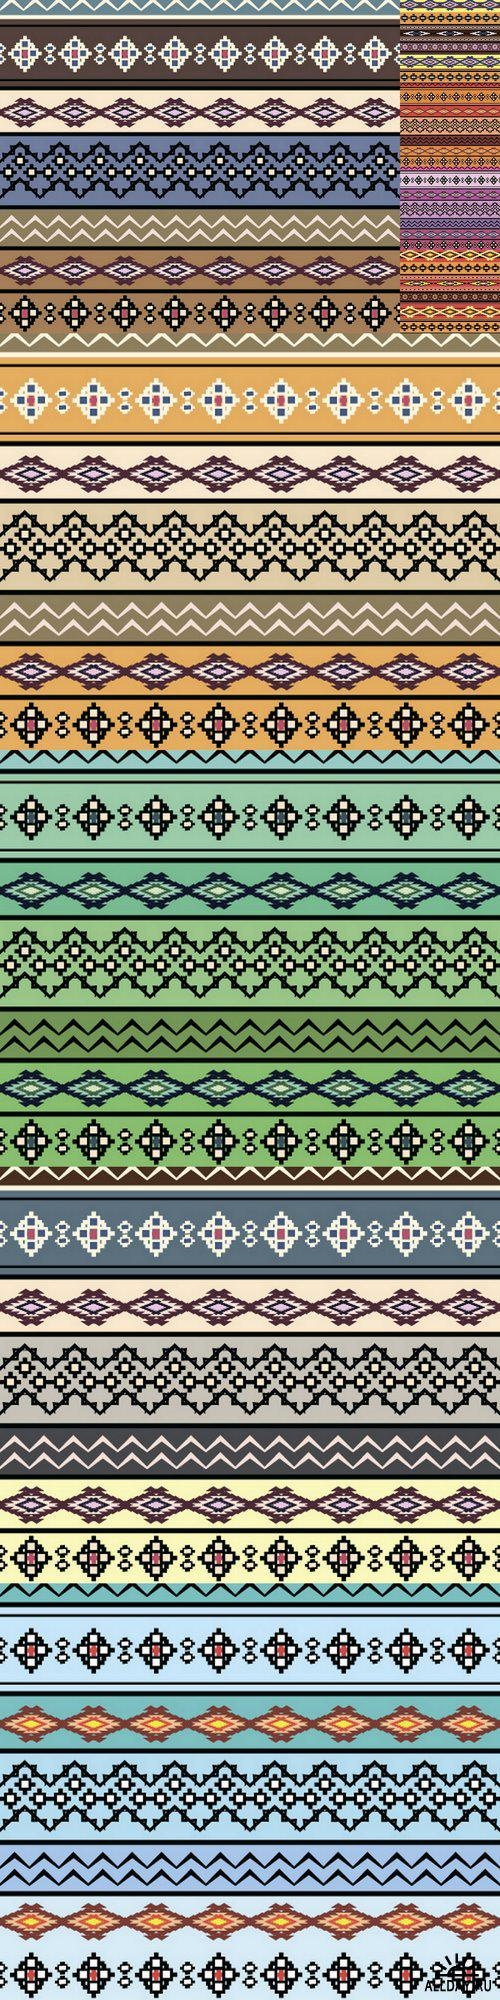 Tribal art boho seamless pattern ((eps (10 files)